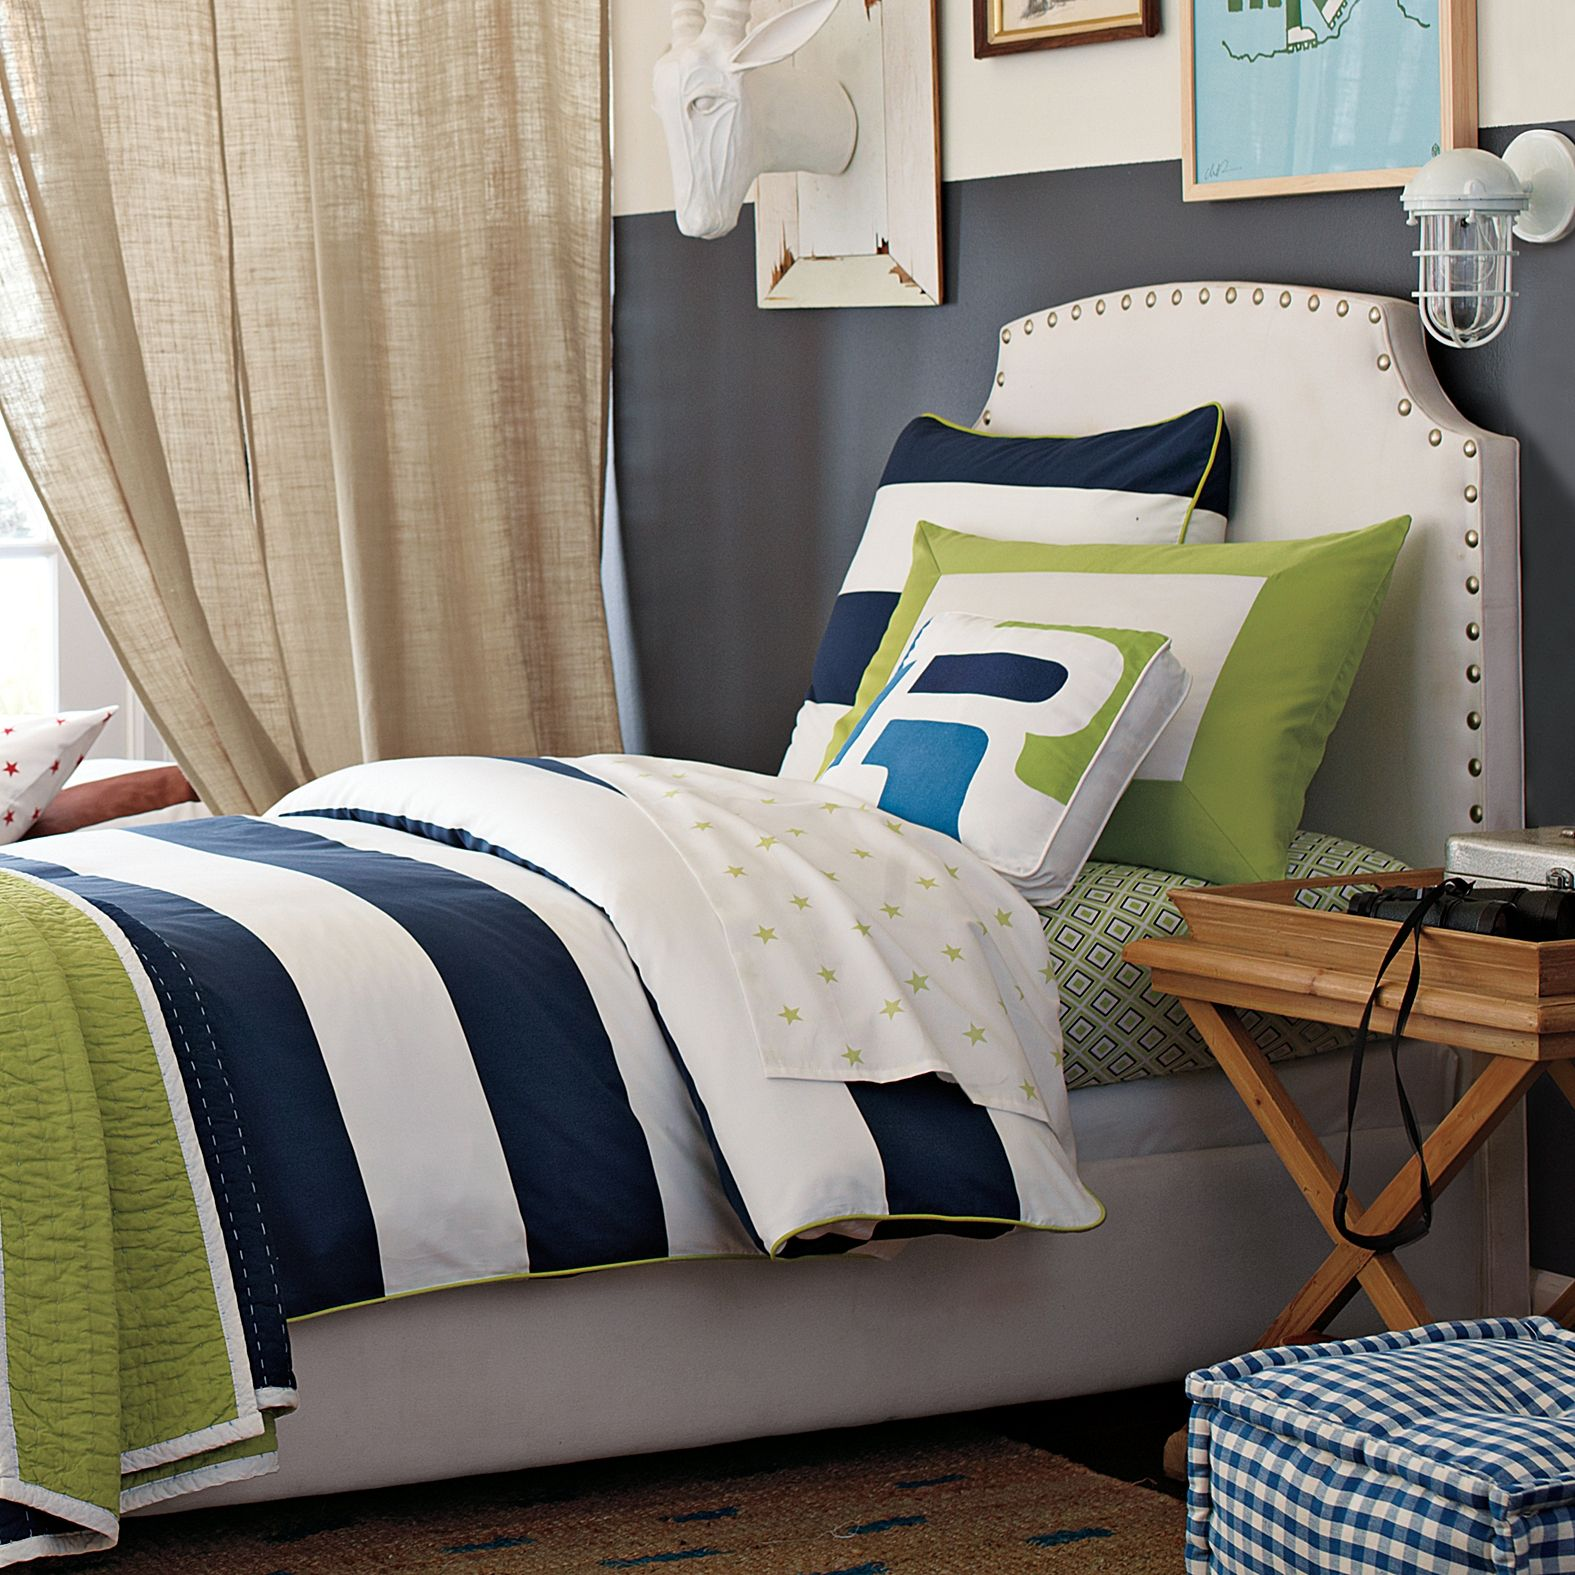 Green boys bedroom ideas - Blue And Green Bedding Grey Walls